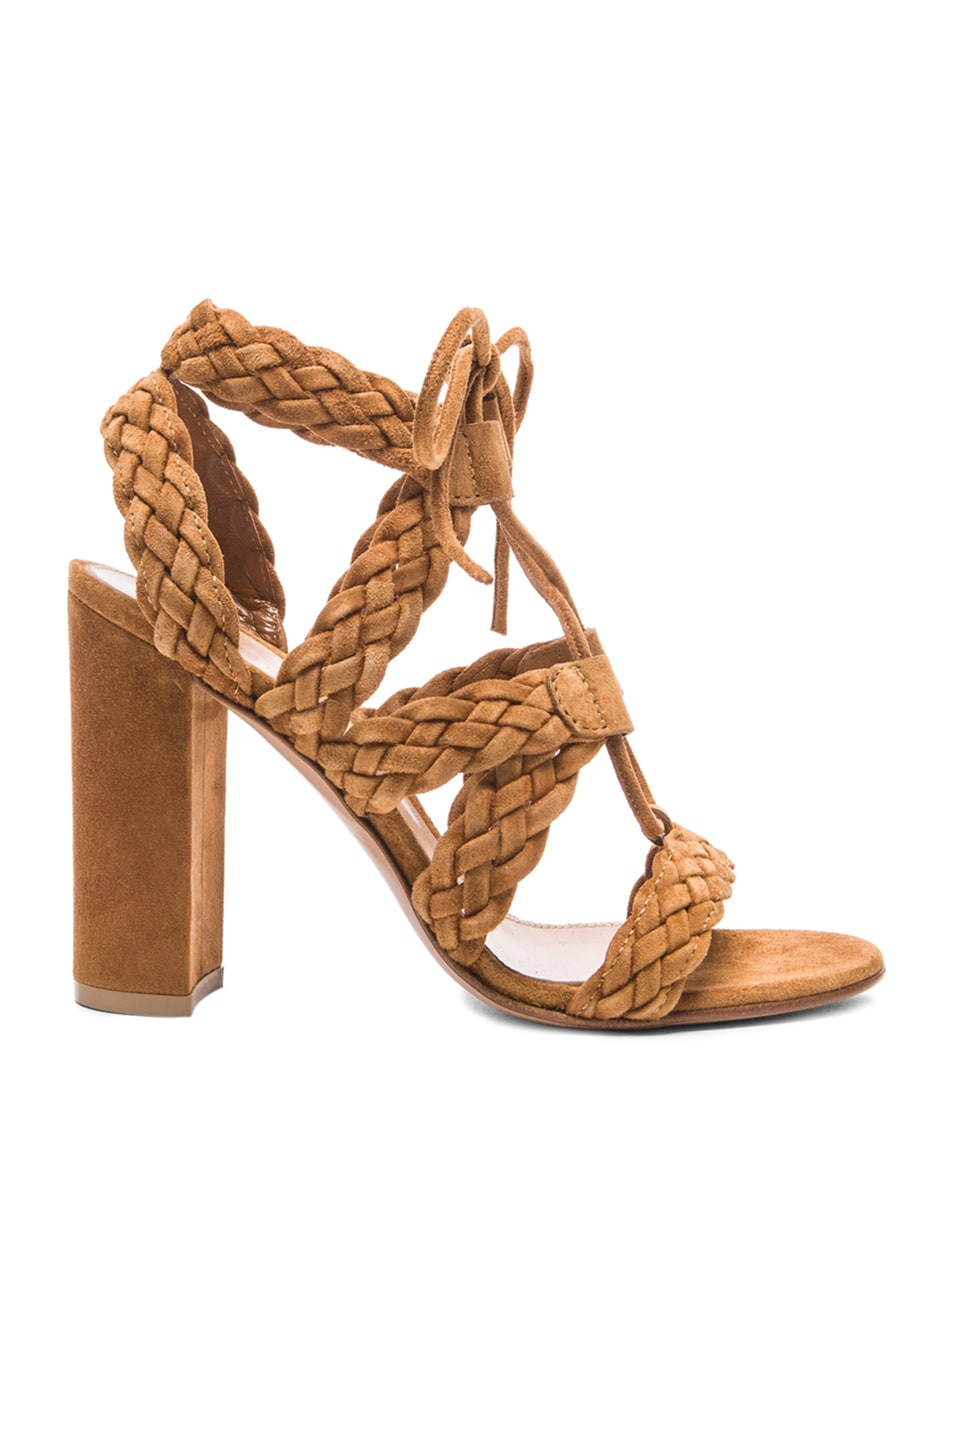 GIANVITO ROSSI Suede Braided Lace-Up Sandal in Almond